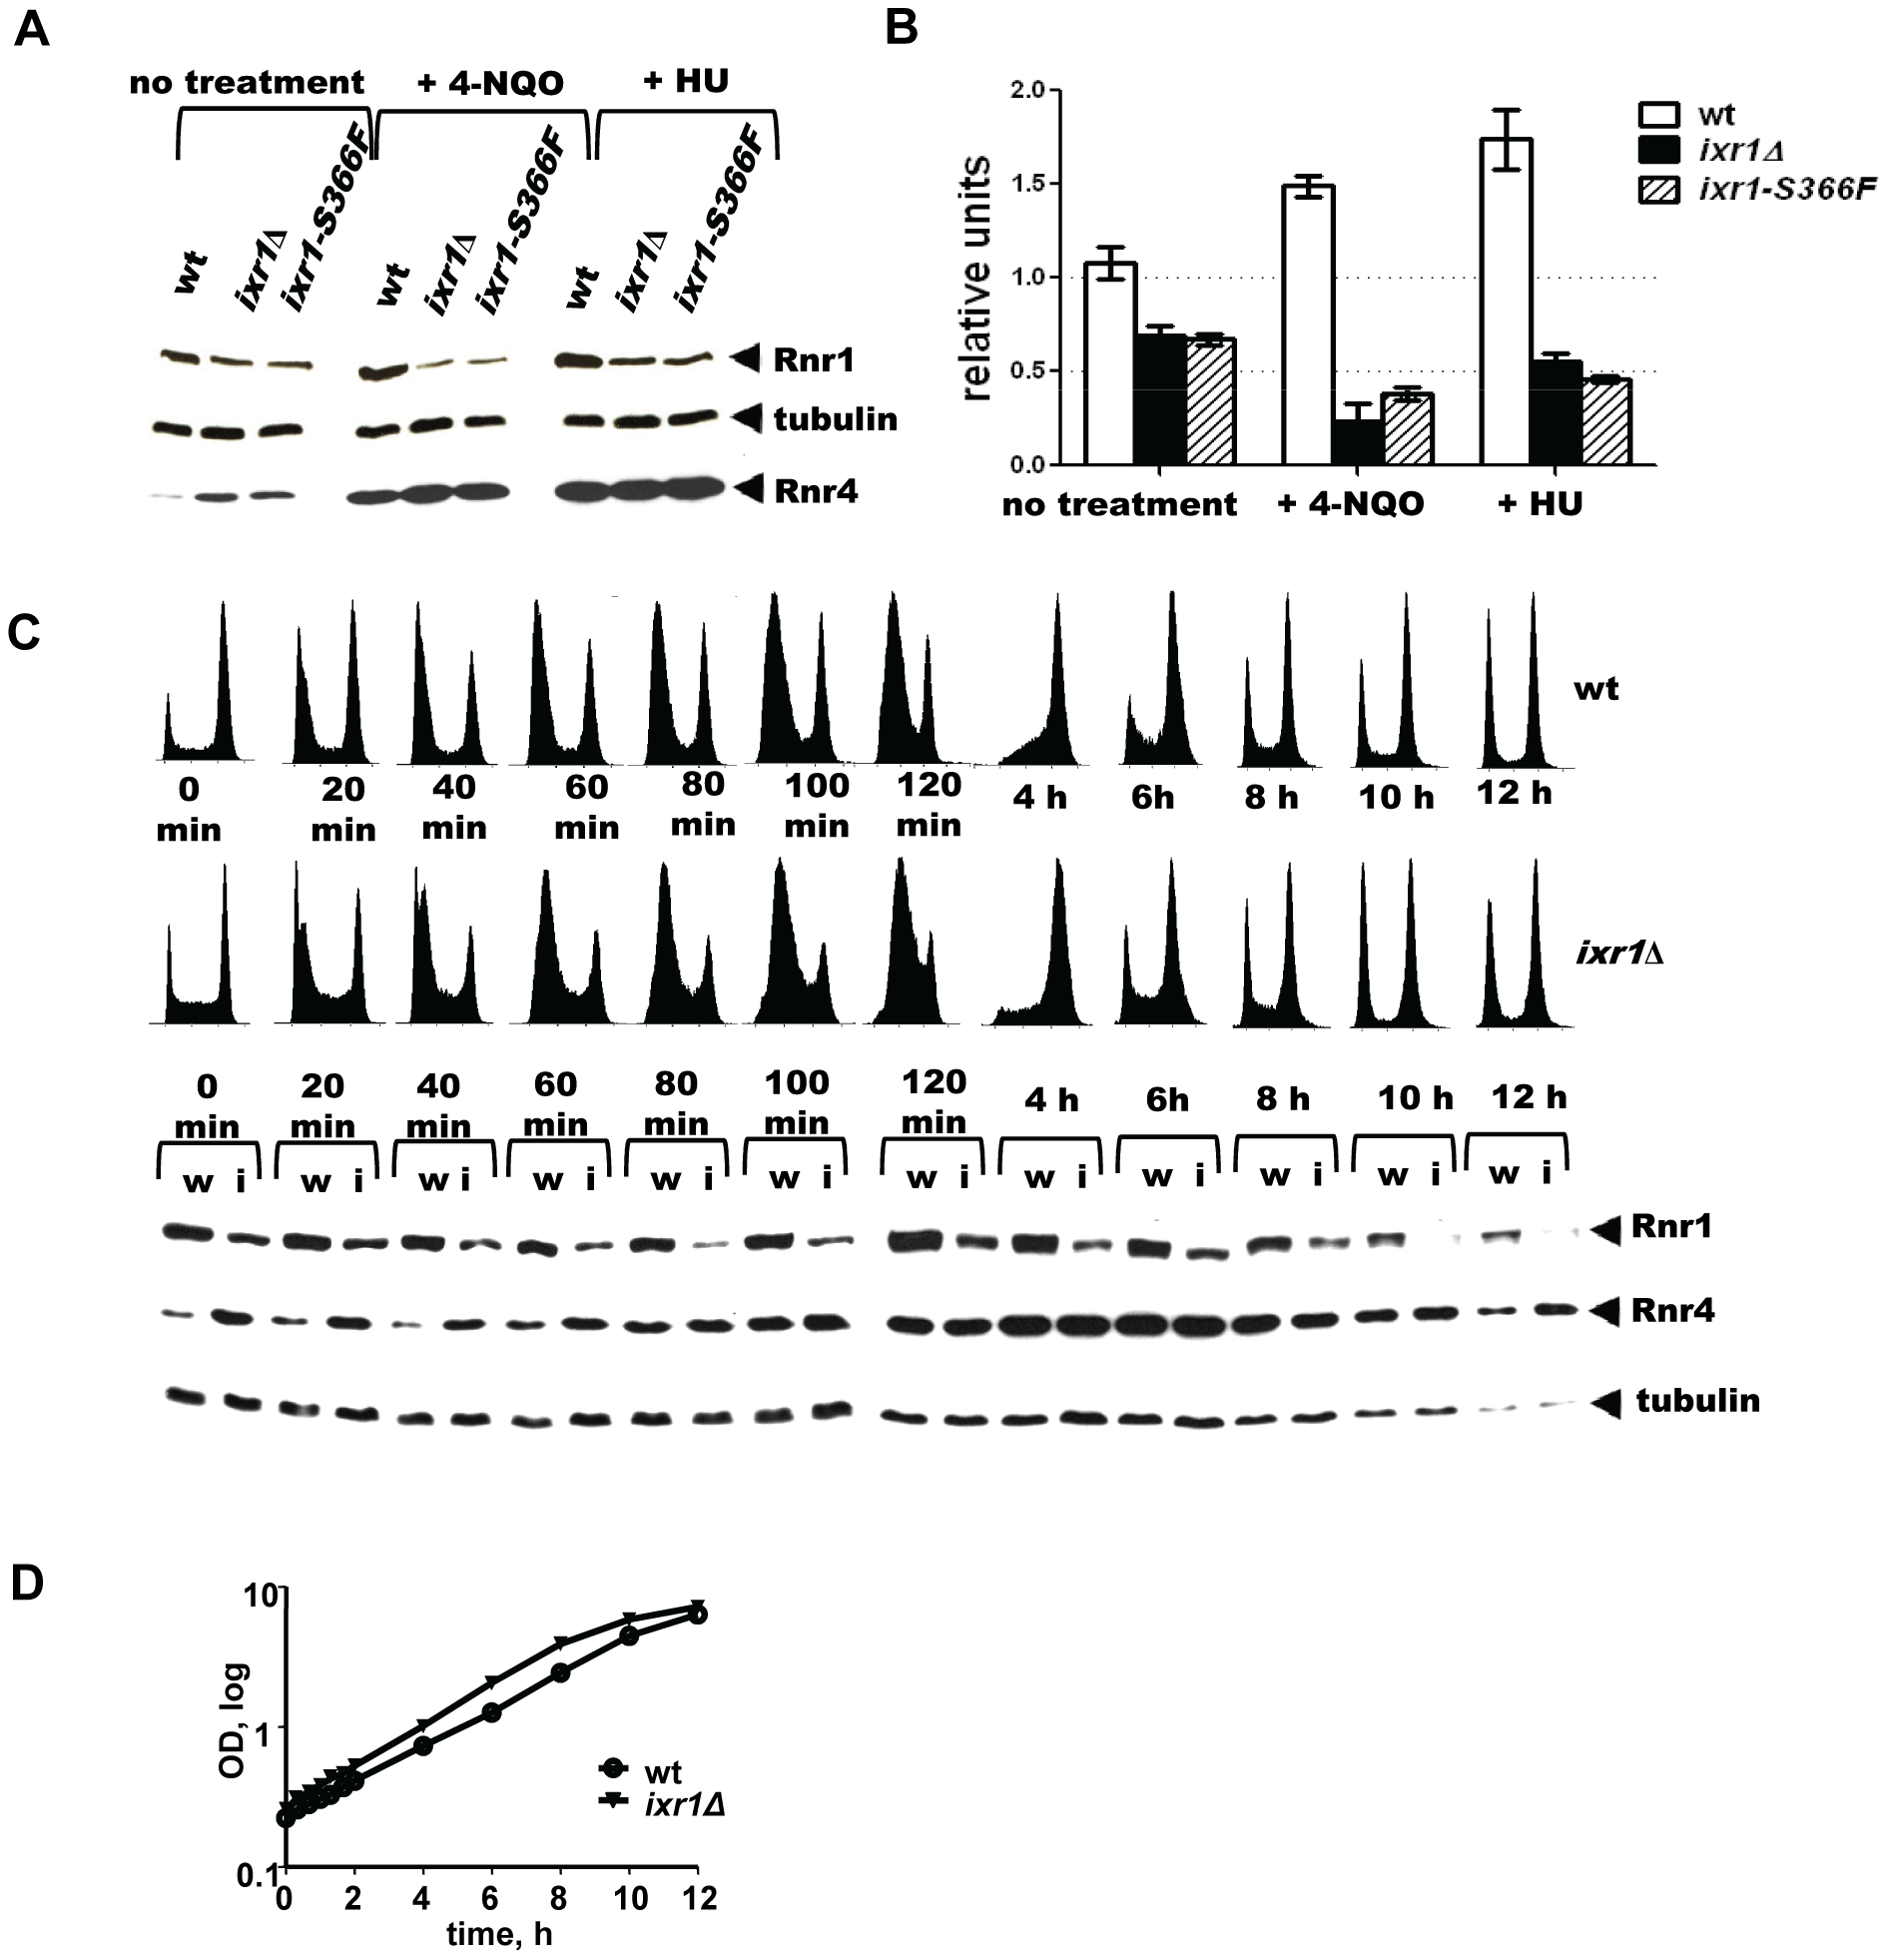 Rnr1 levels are reduced in <i>ixr1</i> after DNA damage.